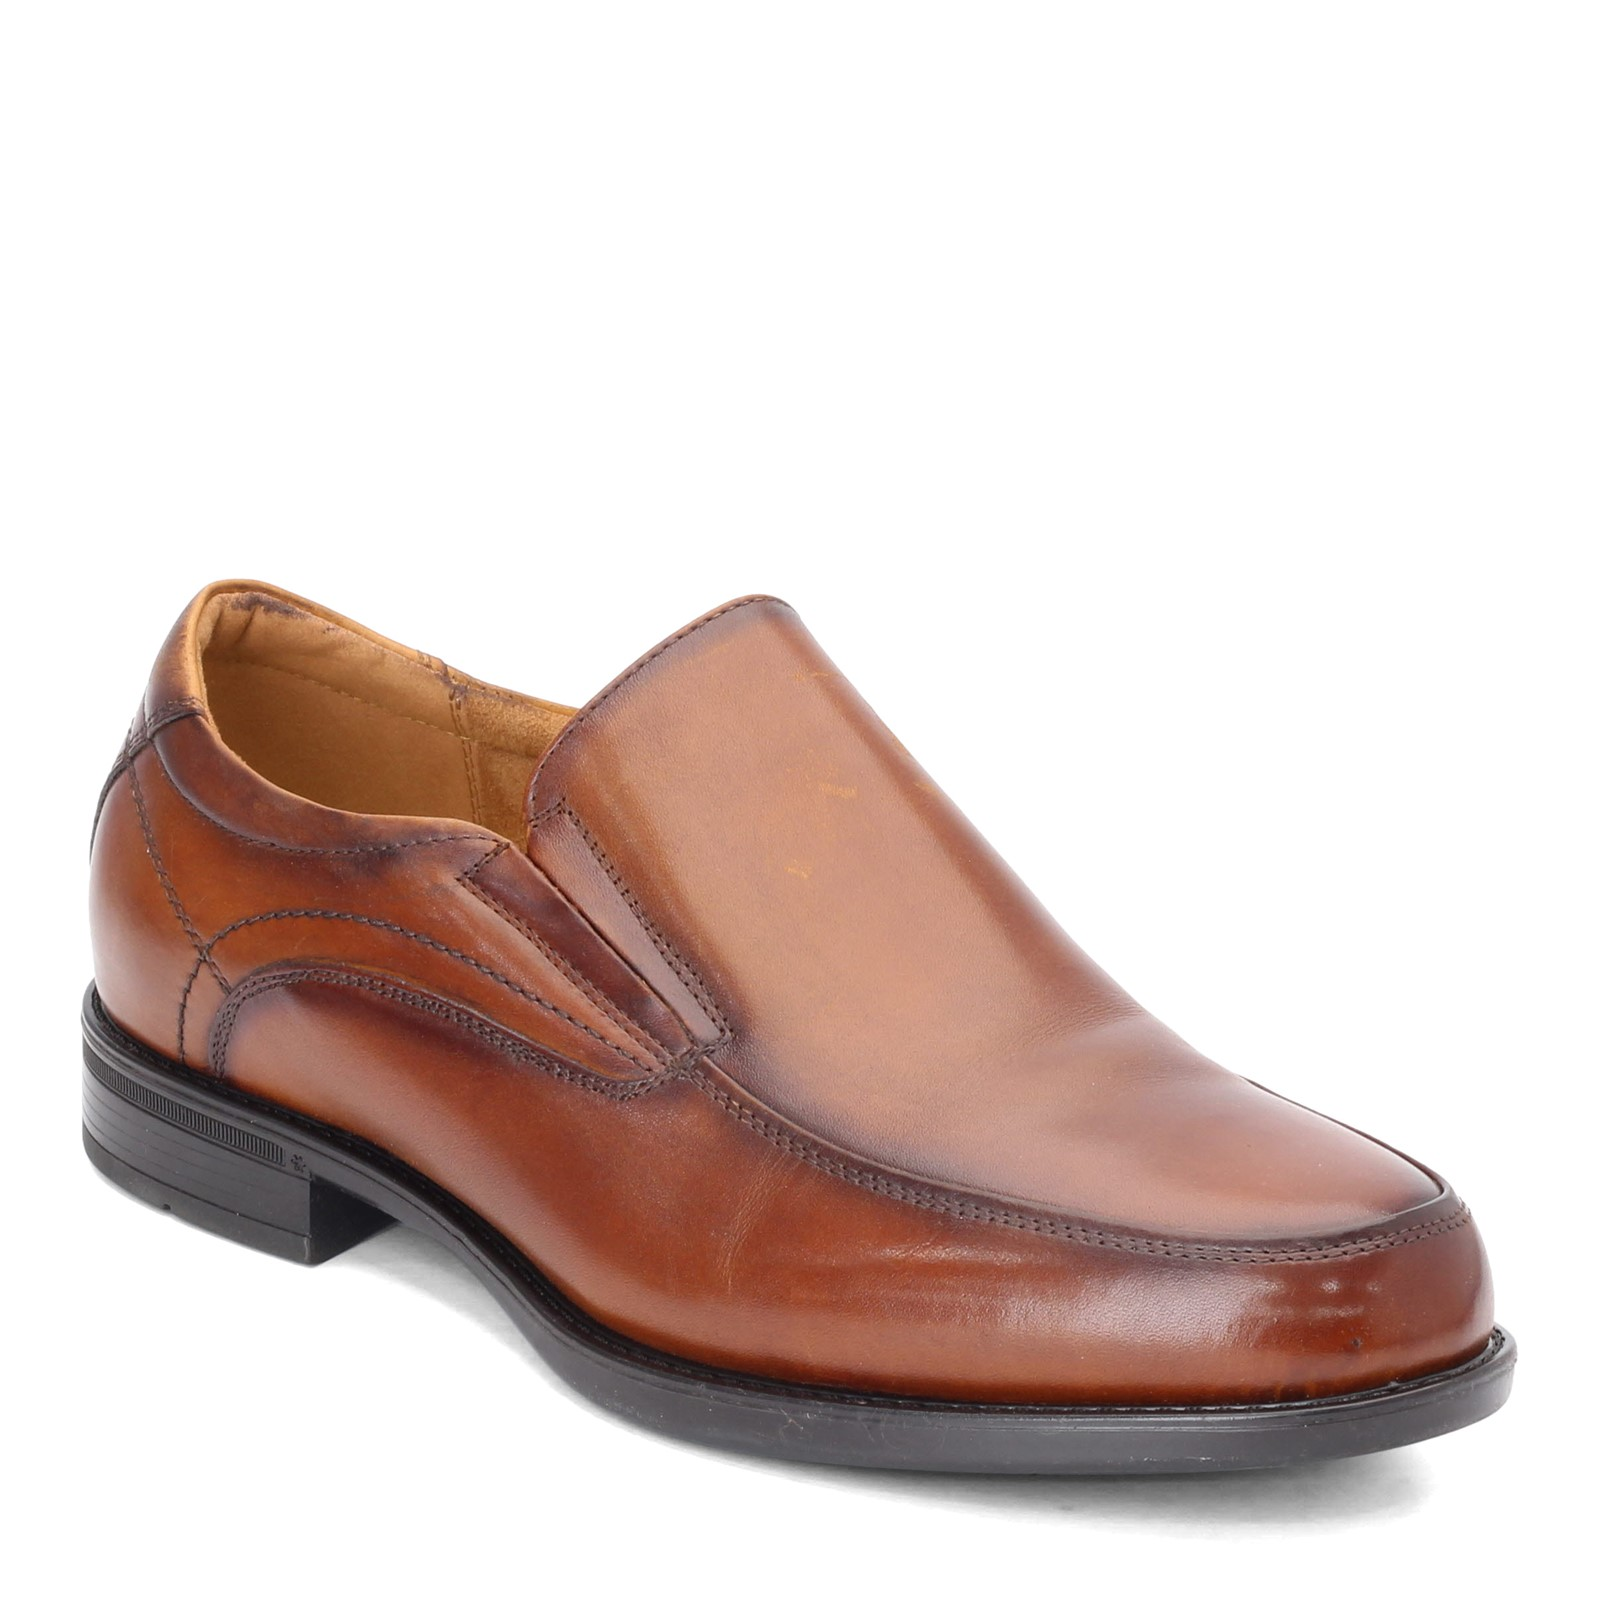 Men's Florsheim, Midtown Moc Toe Slip On